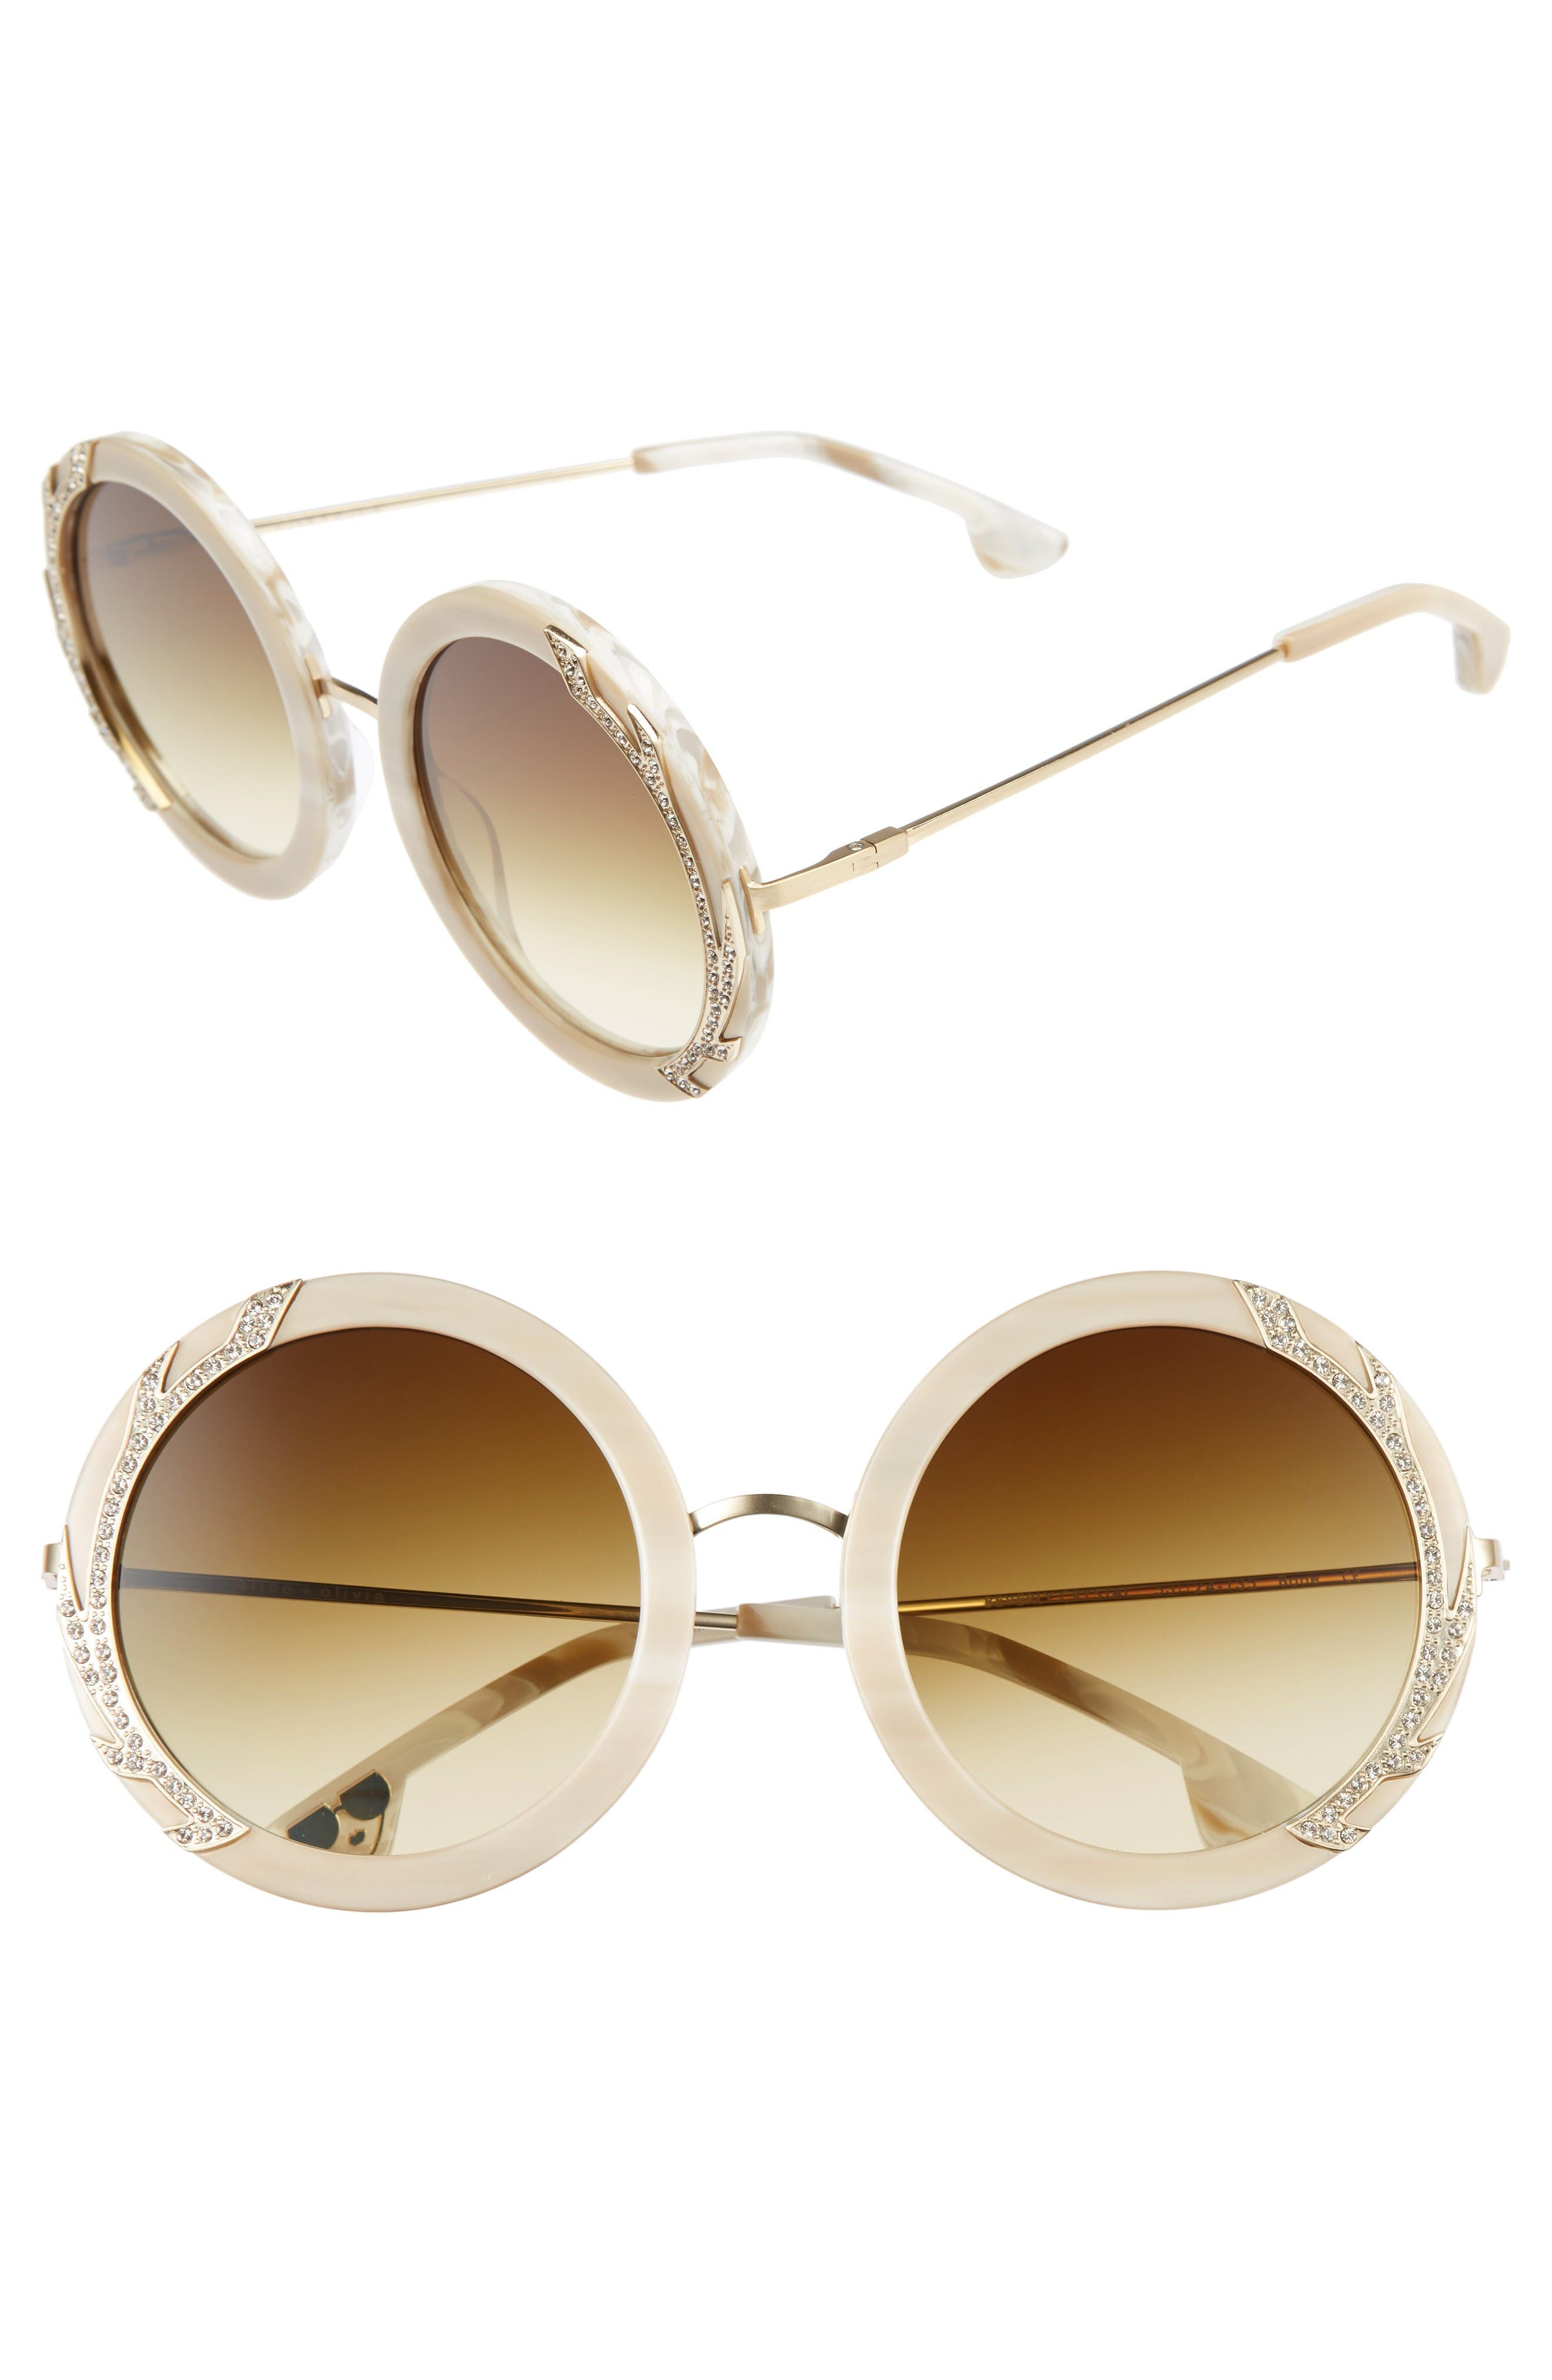 Alice + Olivia Beverly Crystal 53mm Special Fit Round Sunglasses